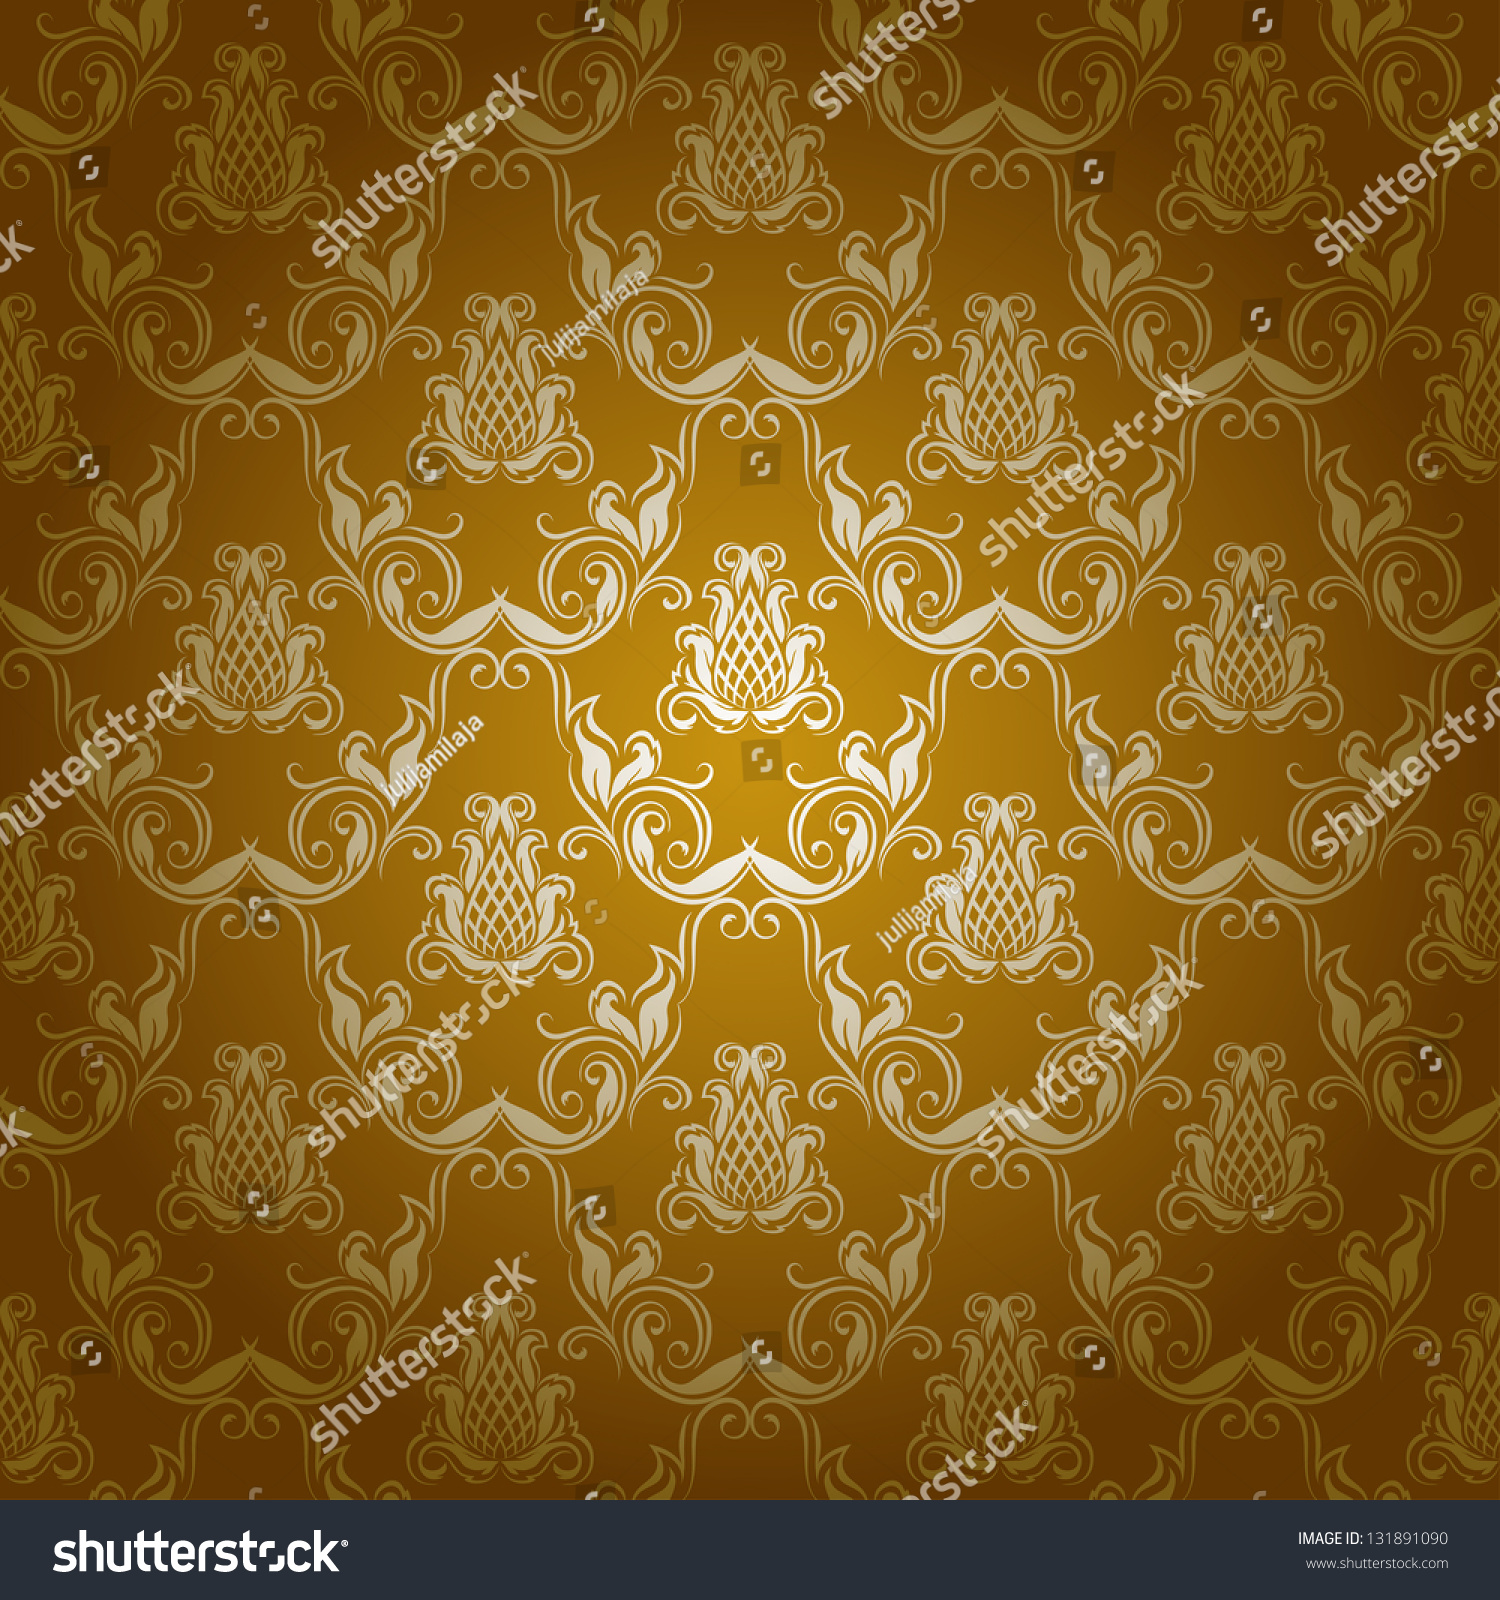 Royal Gold Background Hd